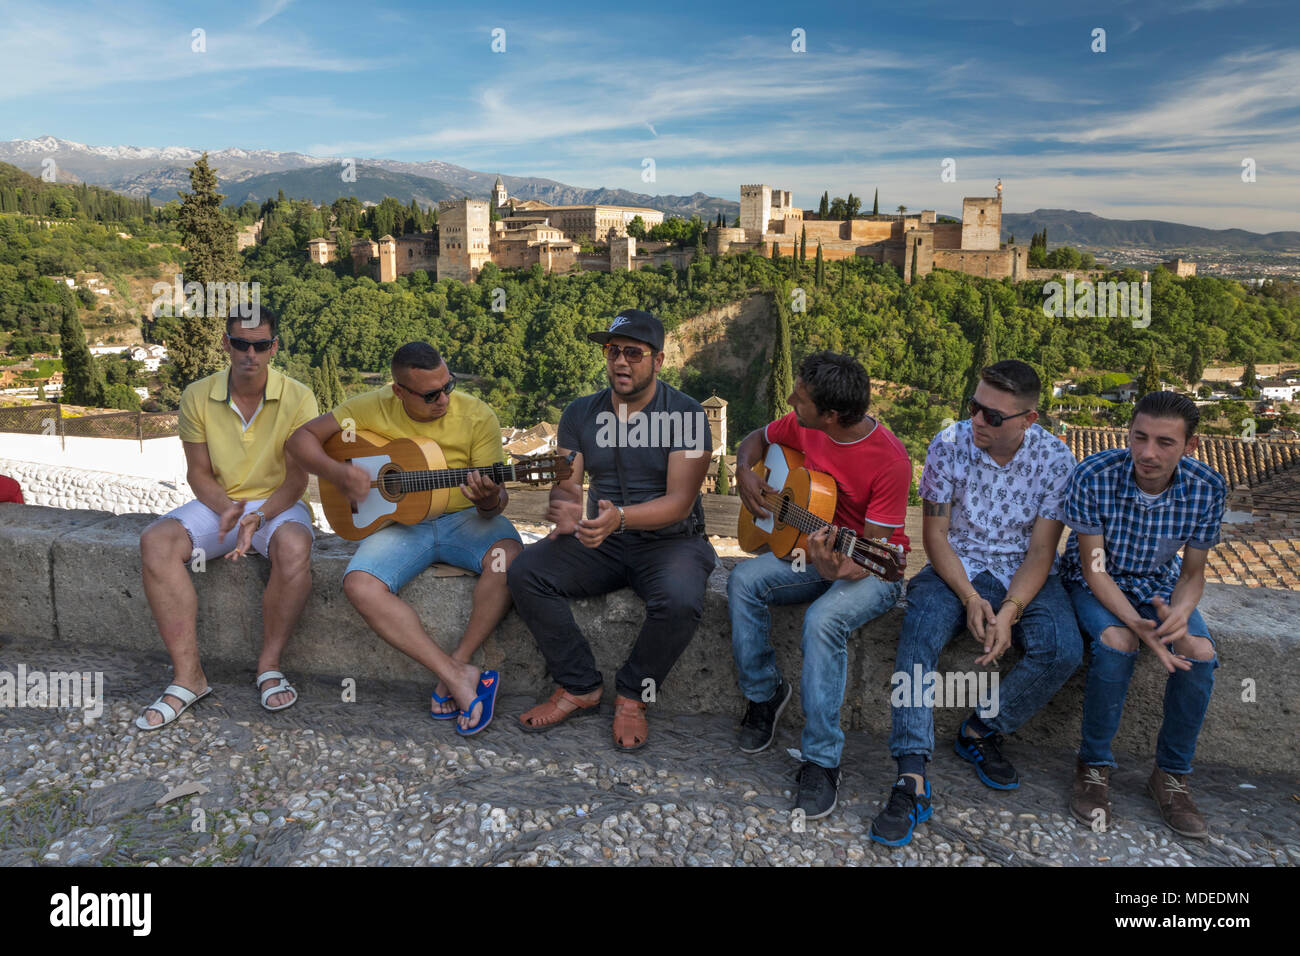 Buskers playing music at the mirador de San Nicolas with the Alhambra and Sierra Nevada mountains behind, Granada, Andalucia, Spain, Europe - Stock Image